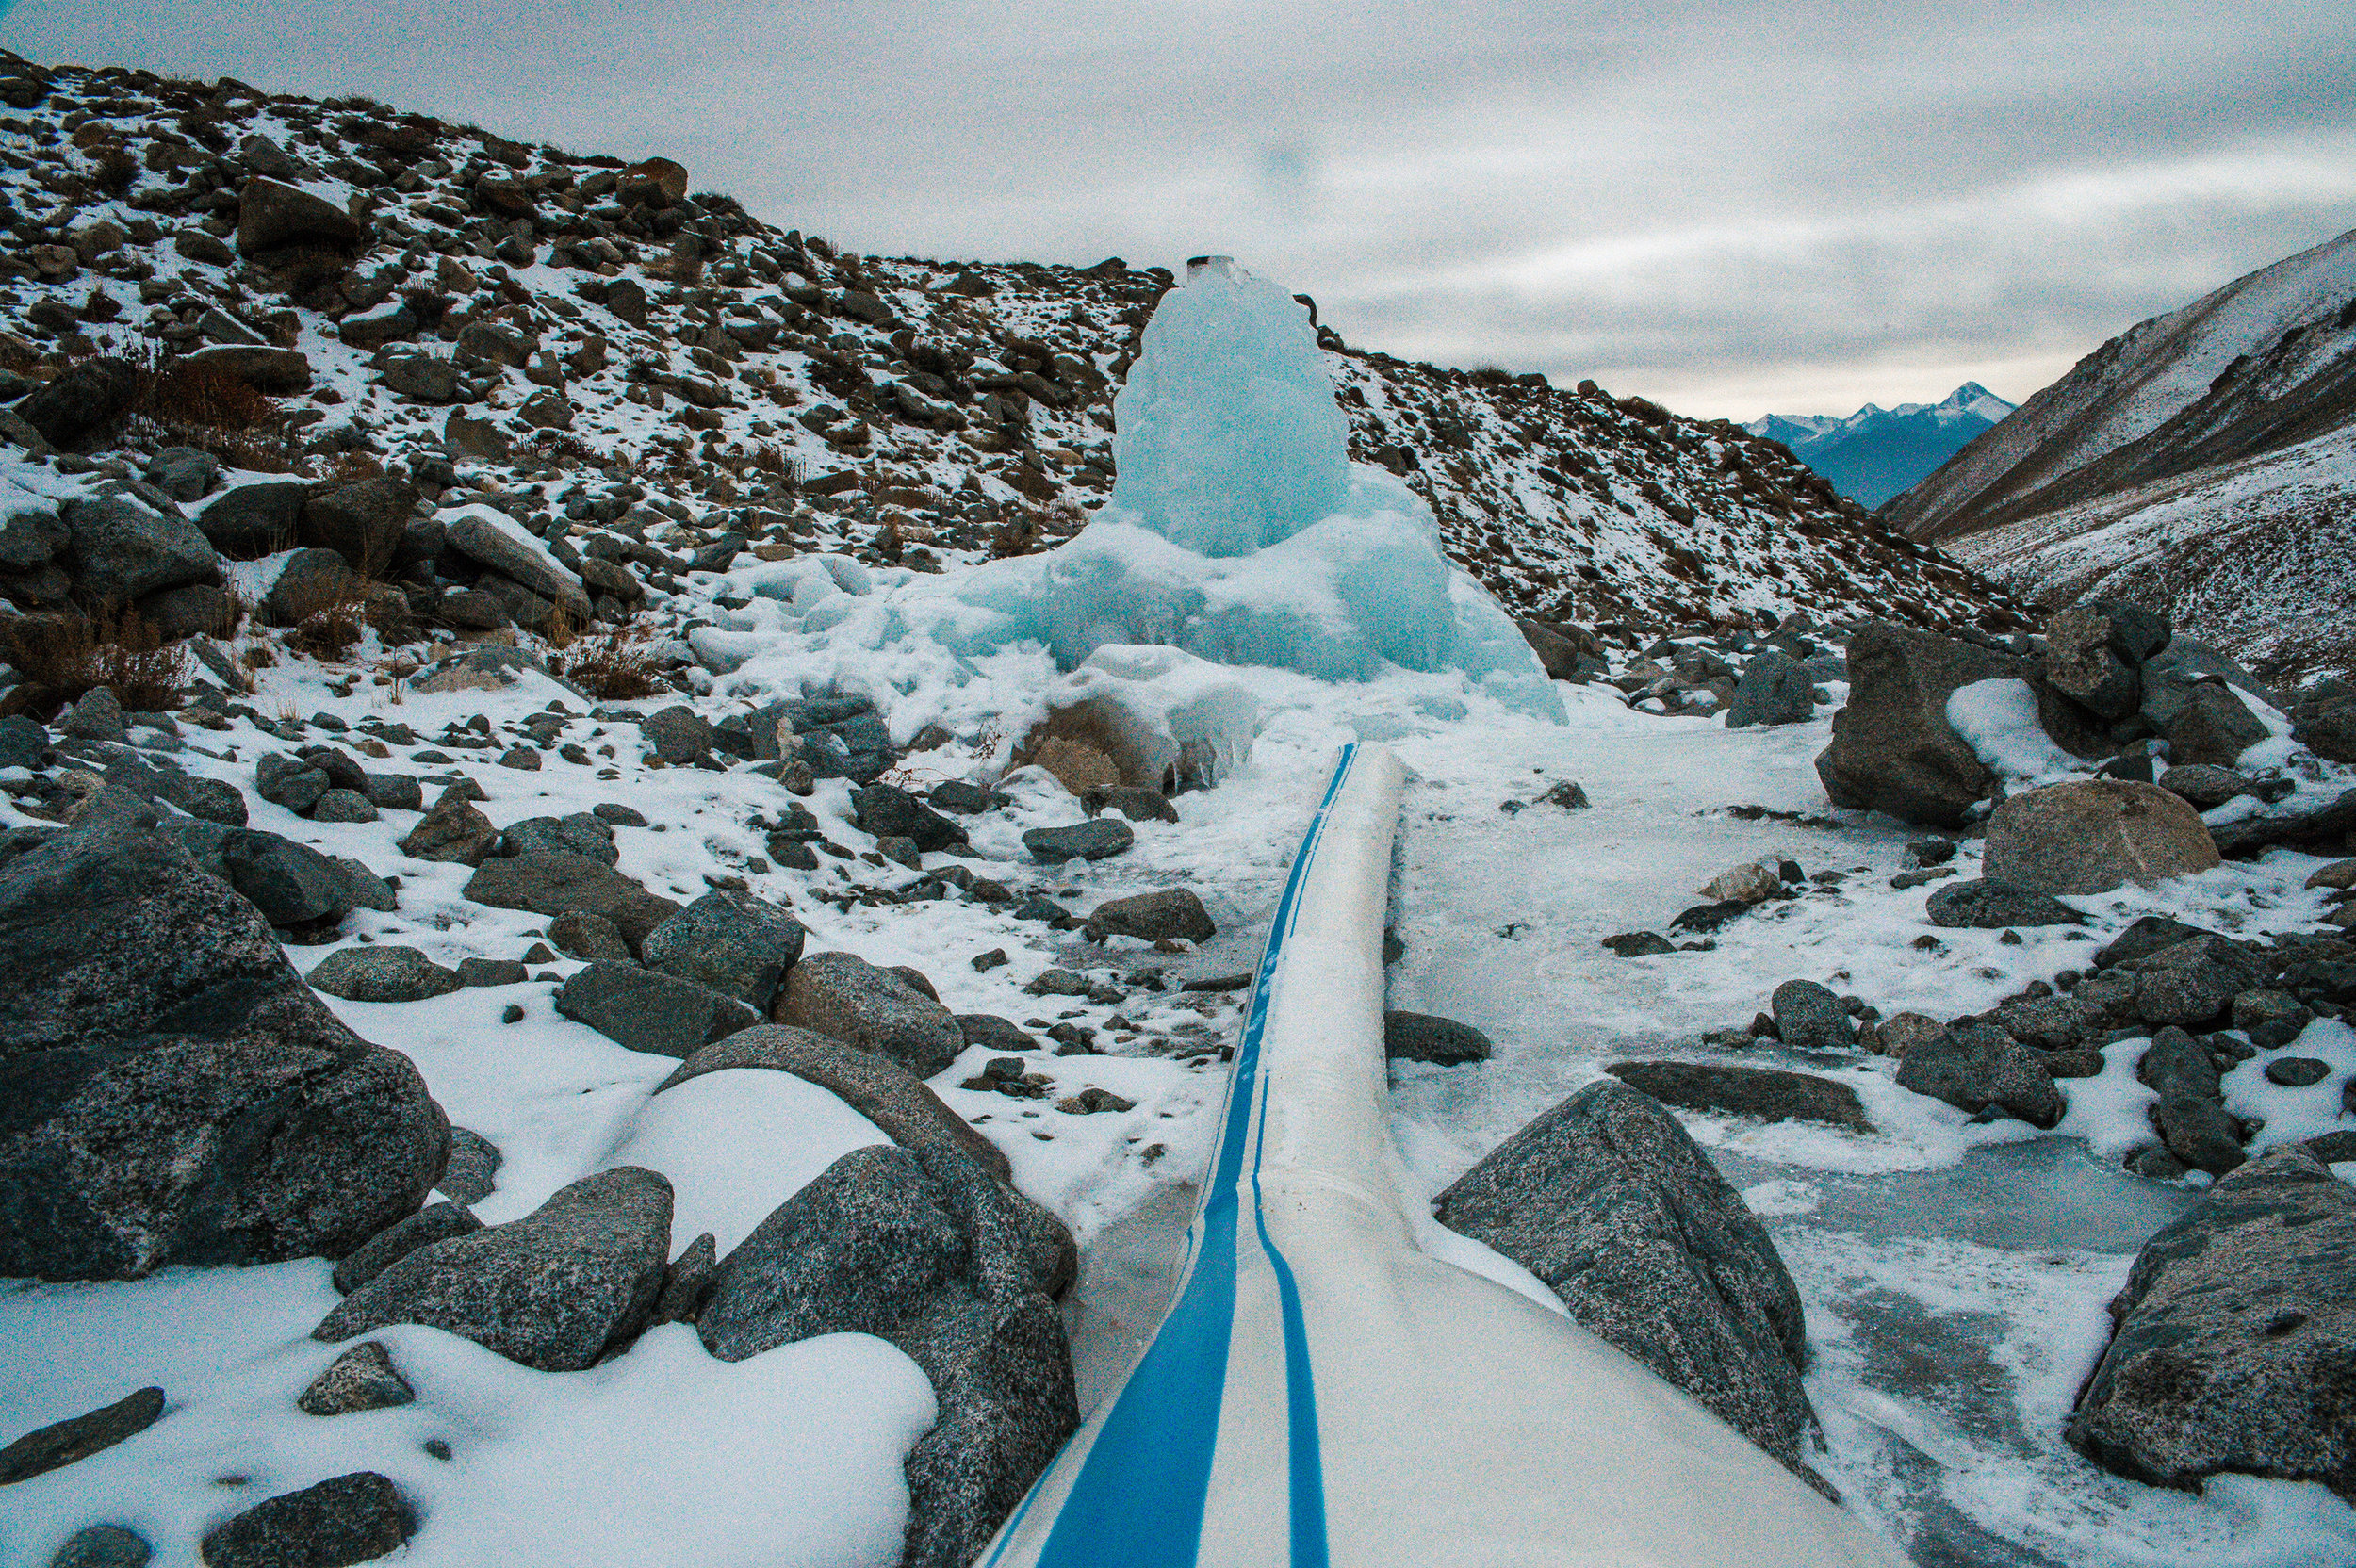 ... To build an ice stupa (artificial glacier) inside a stream, fed only by gravity and naturally gushing water